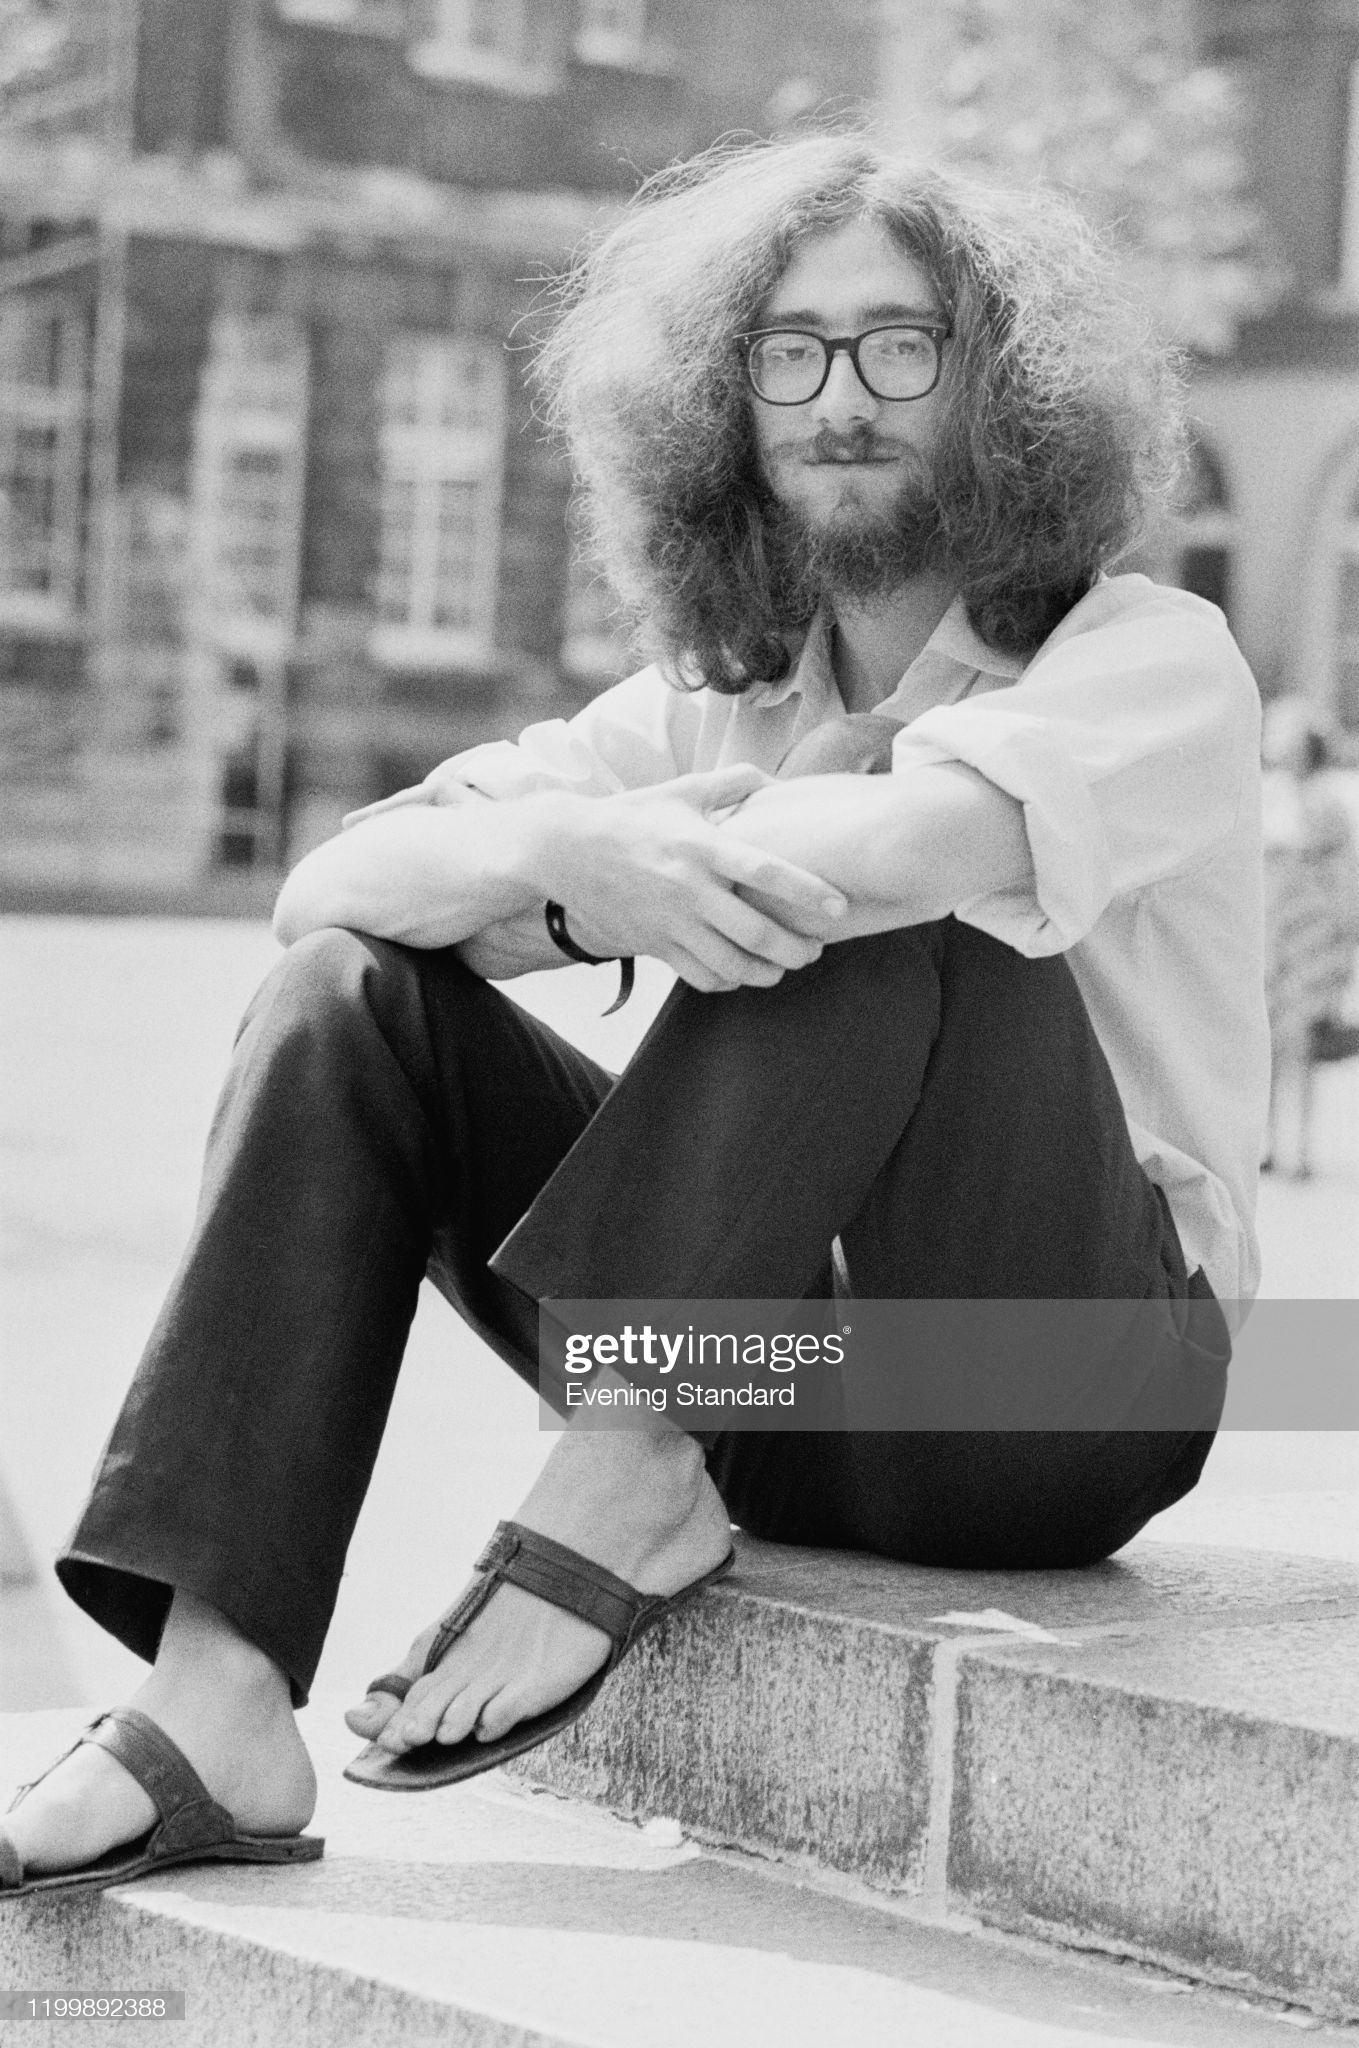 British chess player and mathematician Jonathan Mestel, August 1976. (Photo by Fresco/Evening Standard/Hulton Archive/Getty Images)